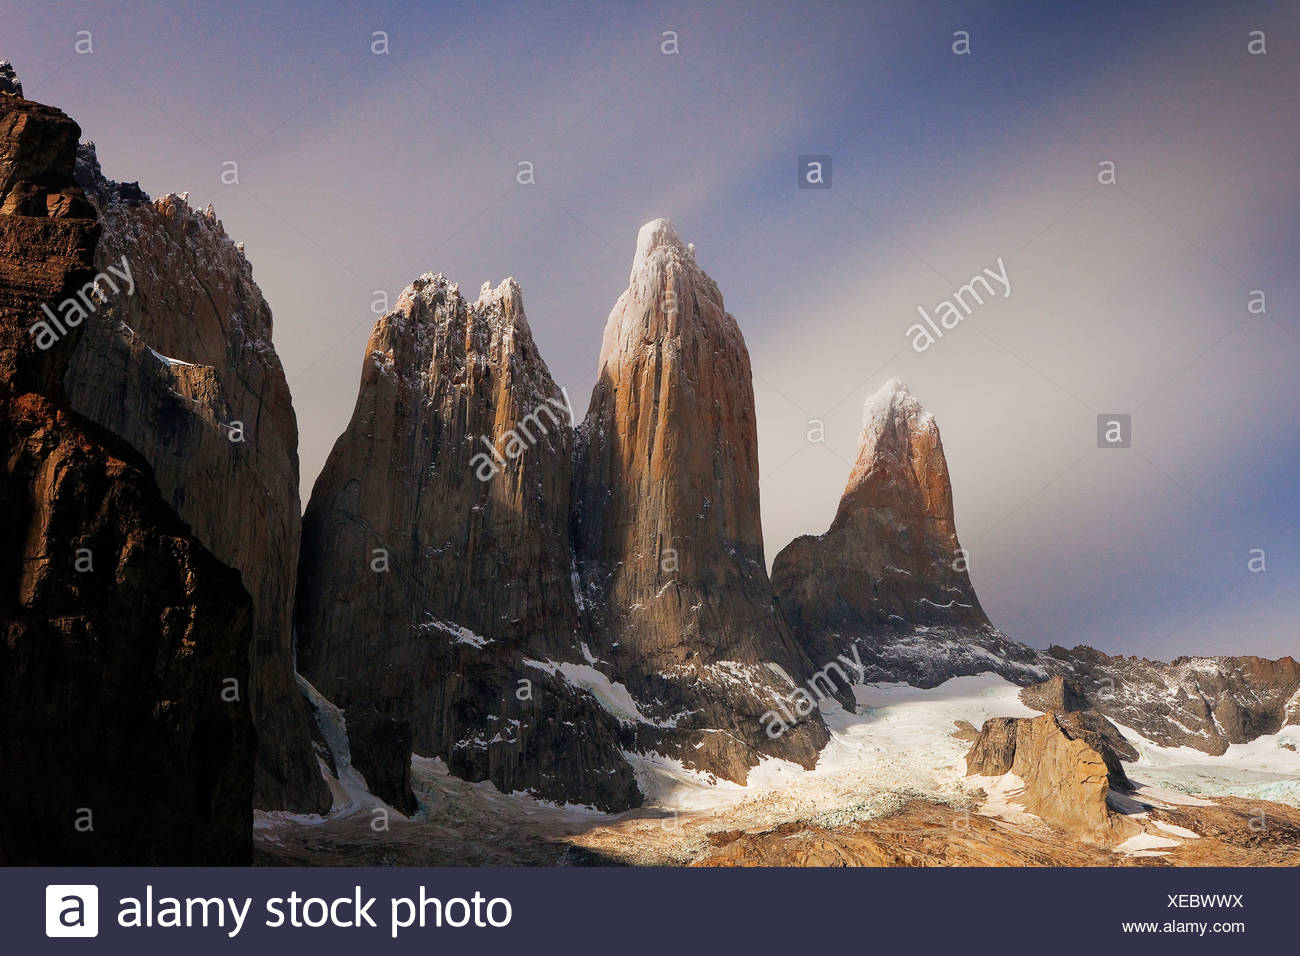 Moonlight over the Torres del Paine, Torres del Paine National Park, Patagonia, Chile, South America - Stock Image